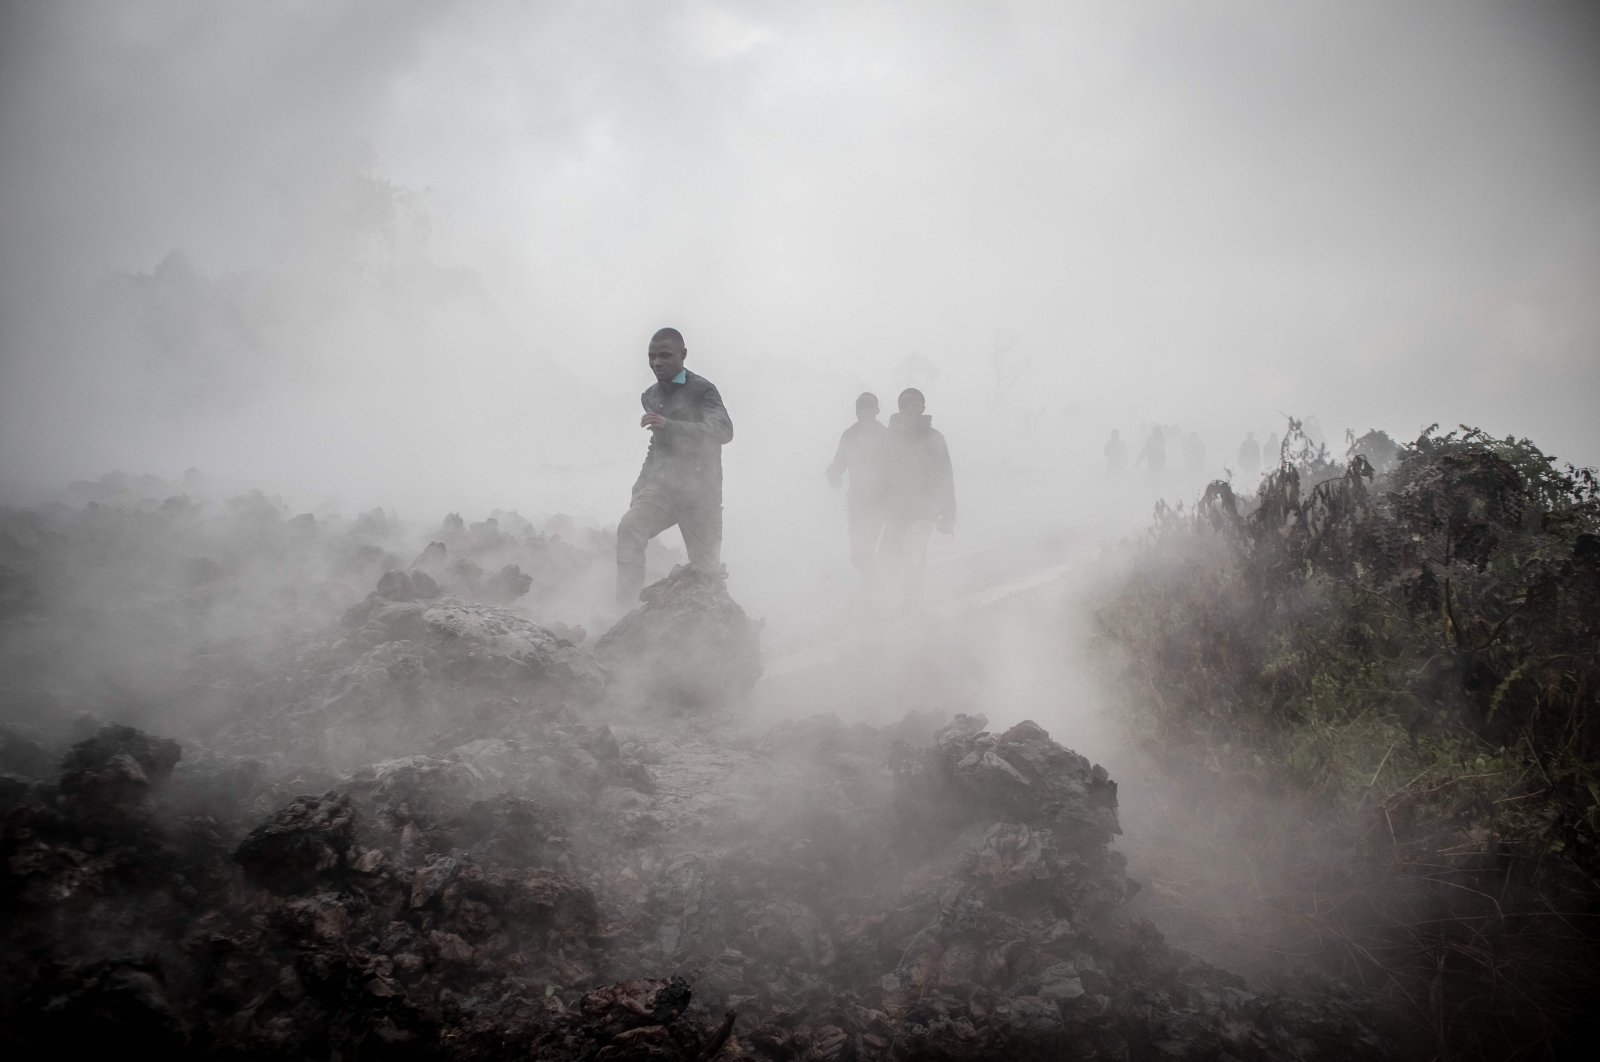 Men cross the front of the still-smoking lava rocks from an eruption of Mount Nyiragongo, Goma, the Democratic Republic of Congo, May 23, 2021. (AFP Photo)